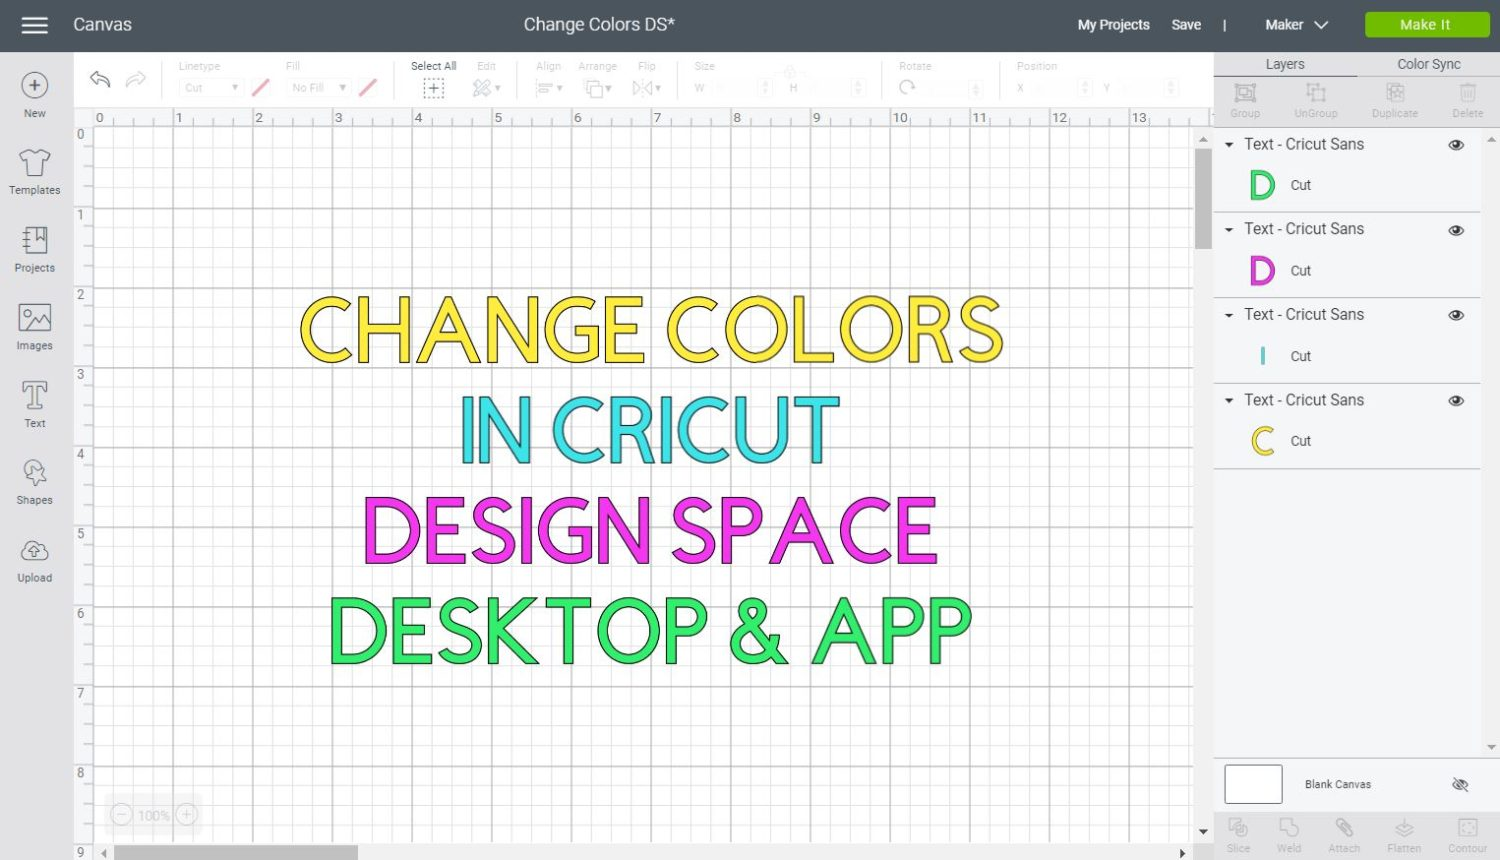 Change Colors in Cricut Design Space Featured Image